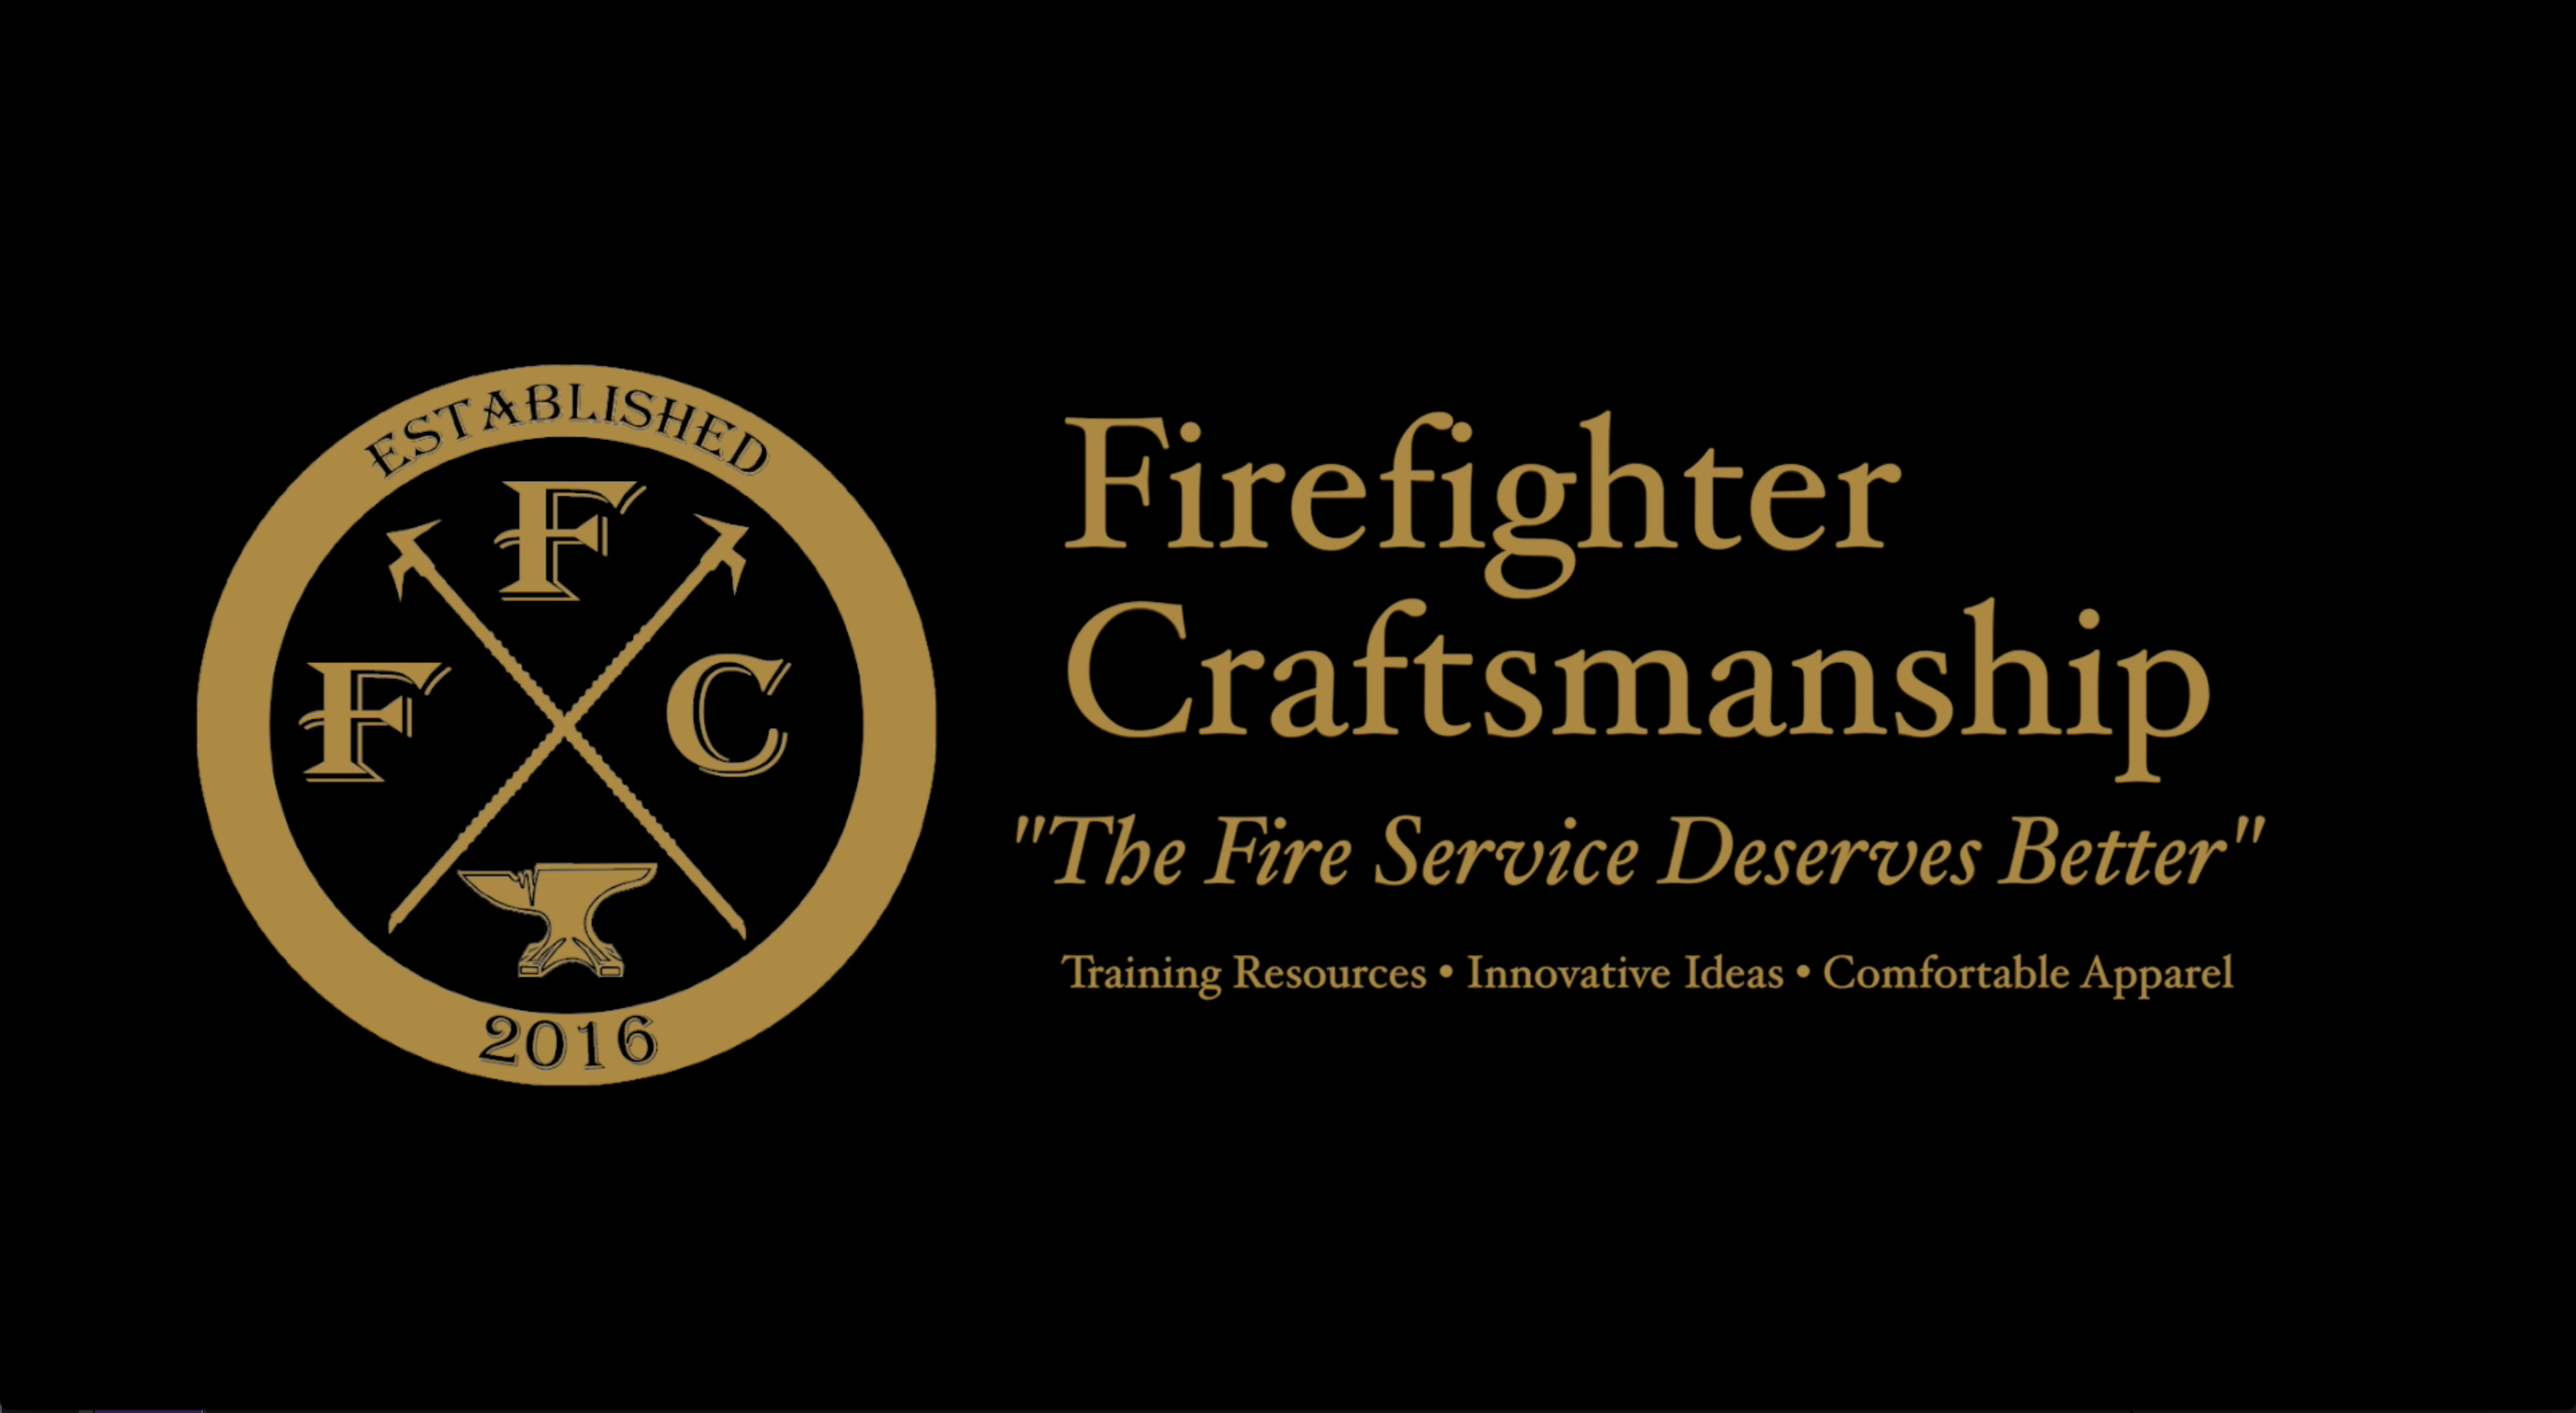 Firefighter CraftsmanshipBlog - Firefighter Craftsmanship